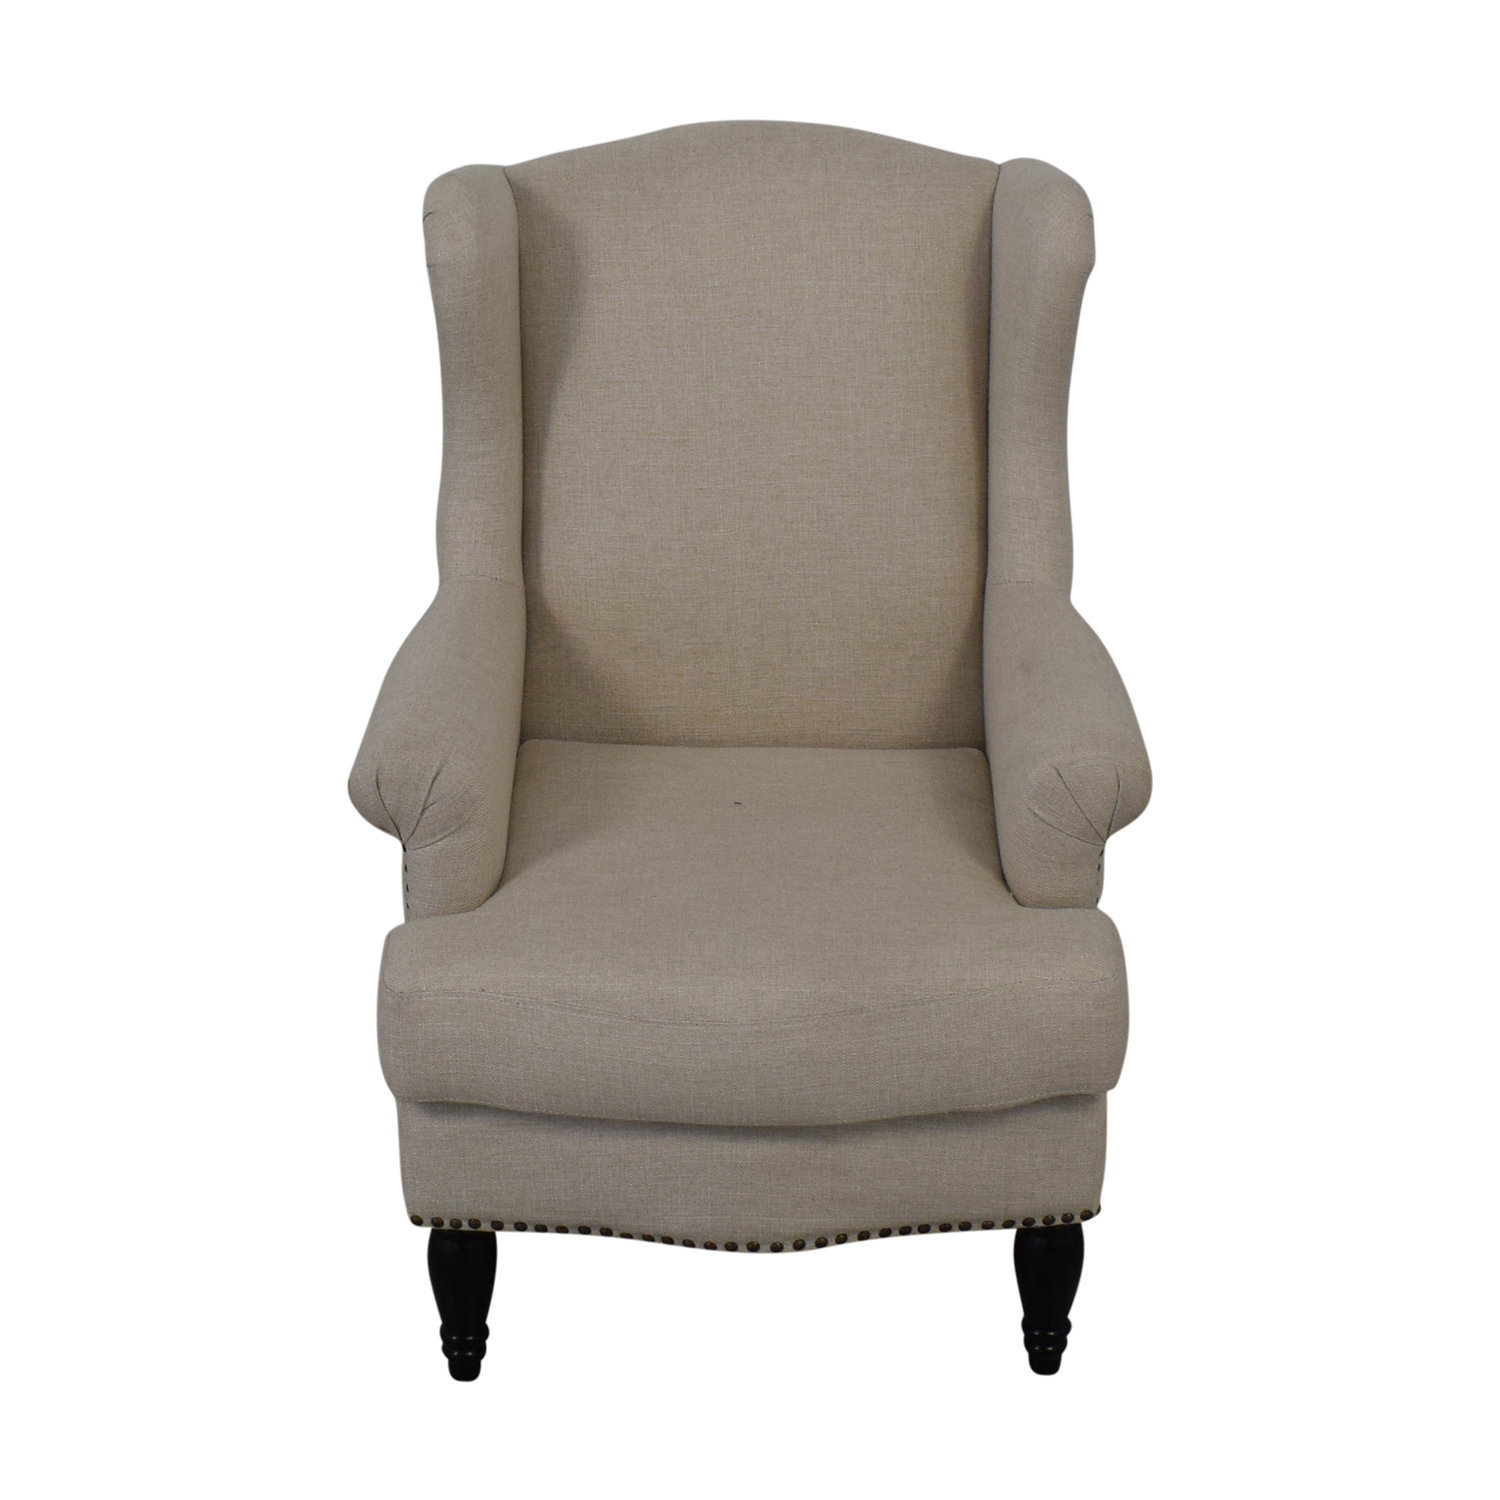 Pottery Barn Pottery Barn Soma Delancey Upholstered Wingback Armchair for sale